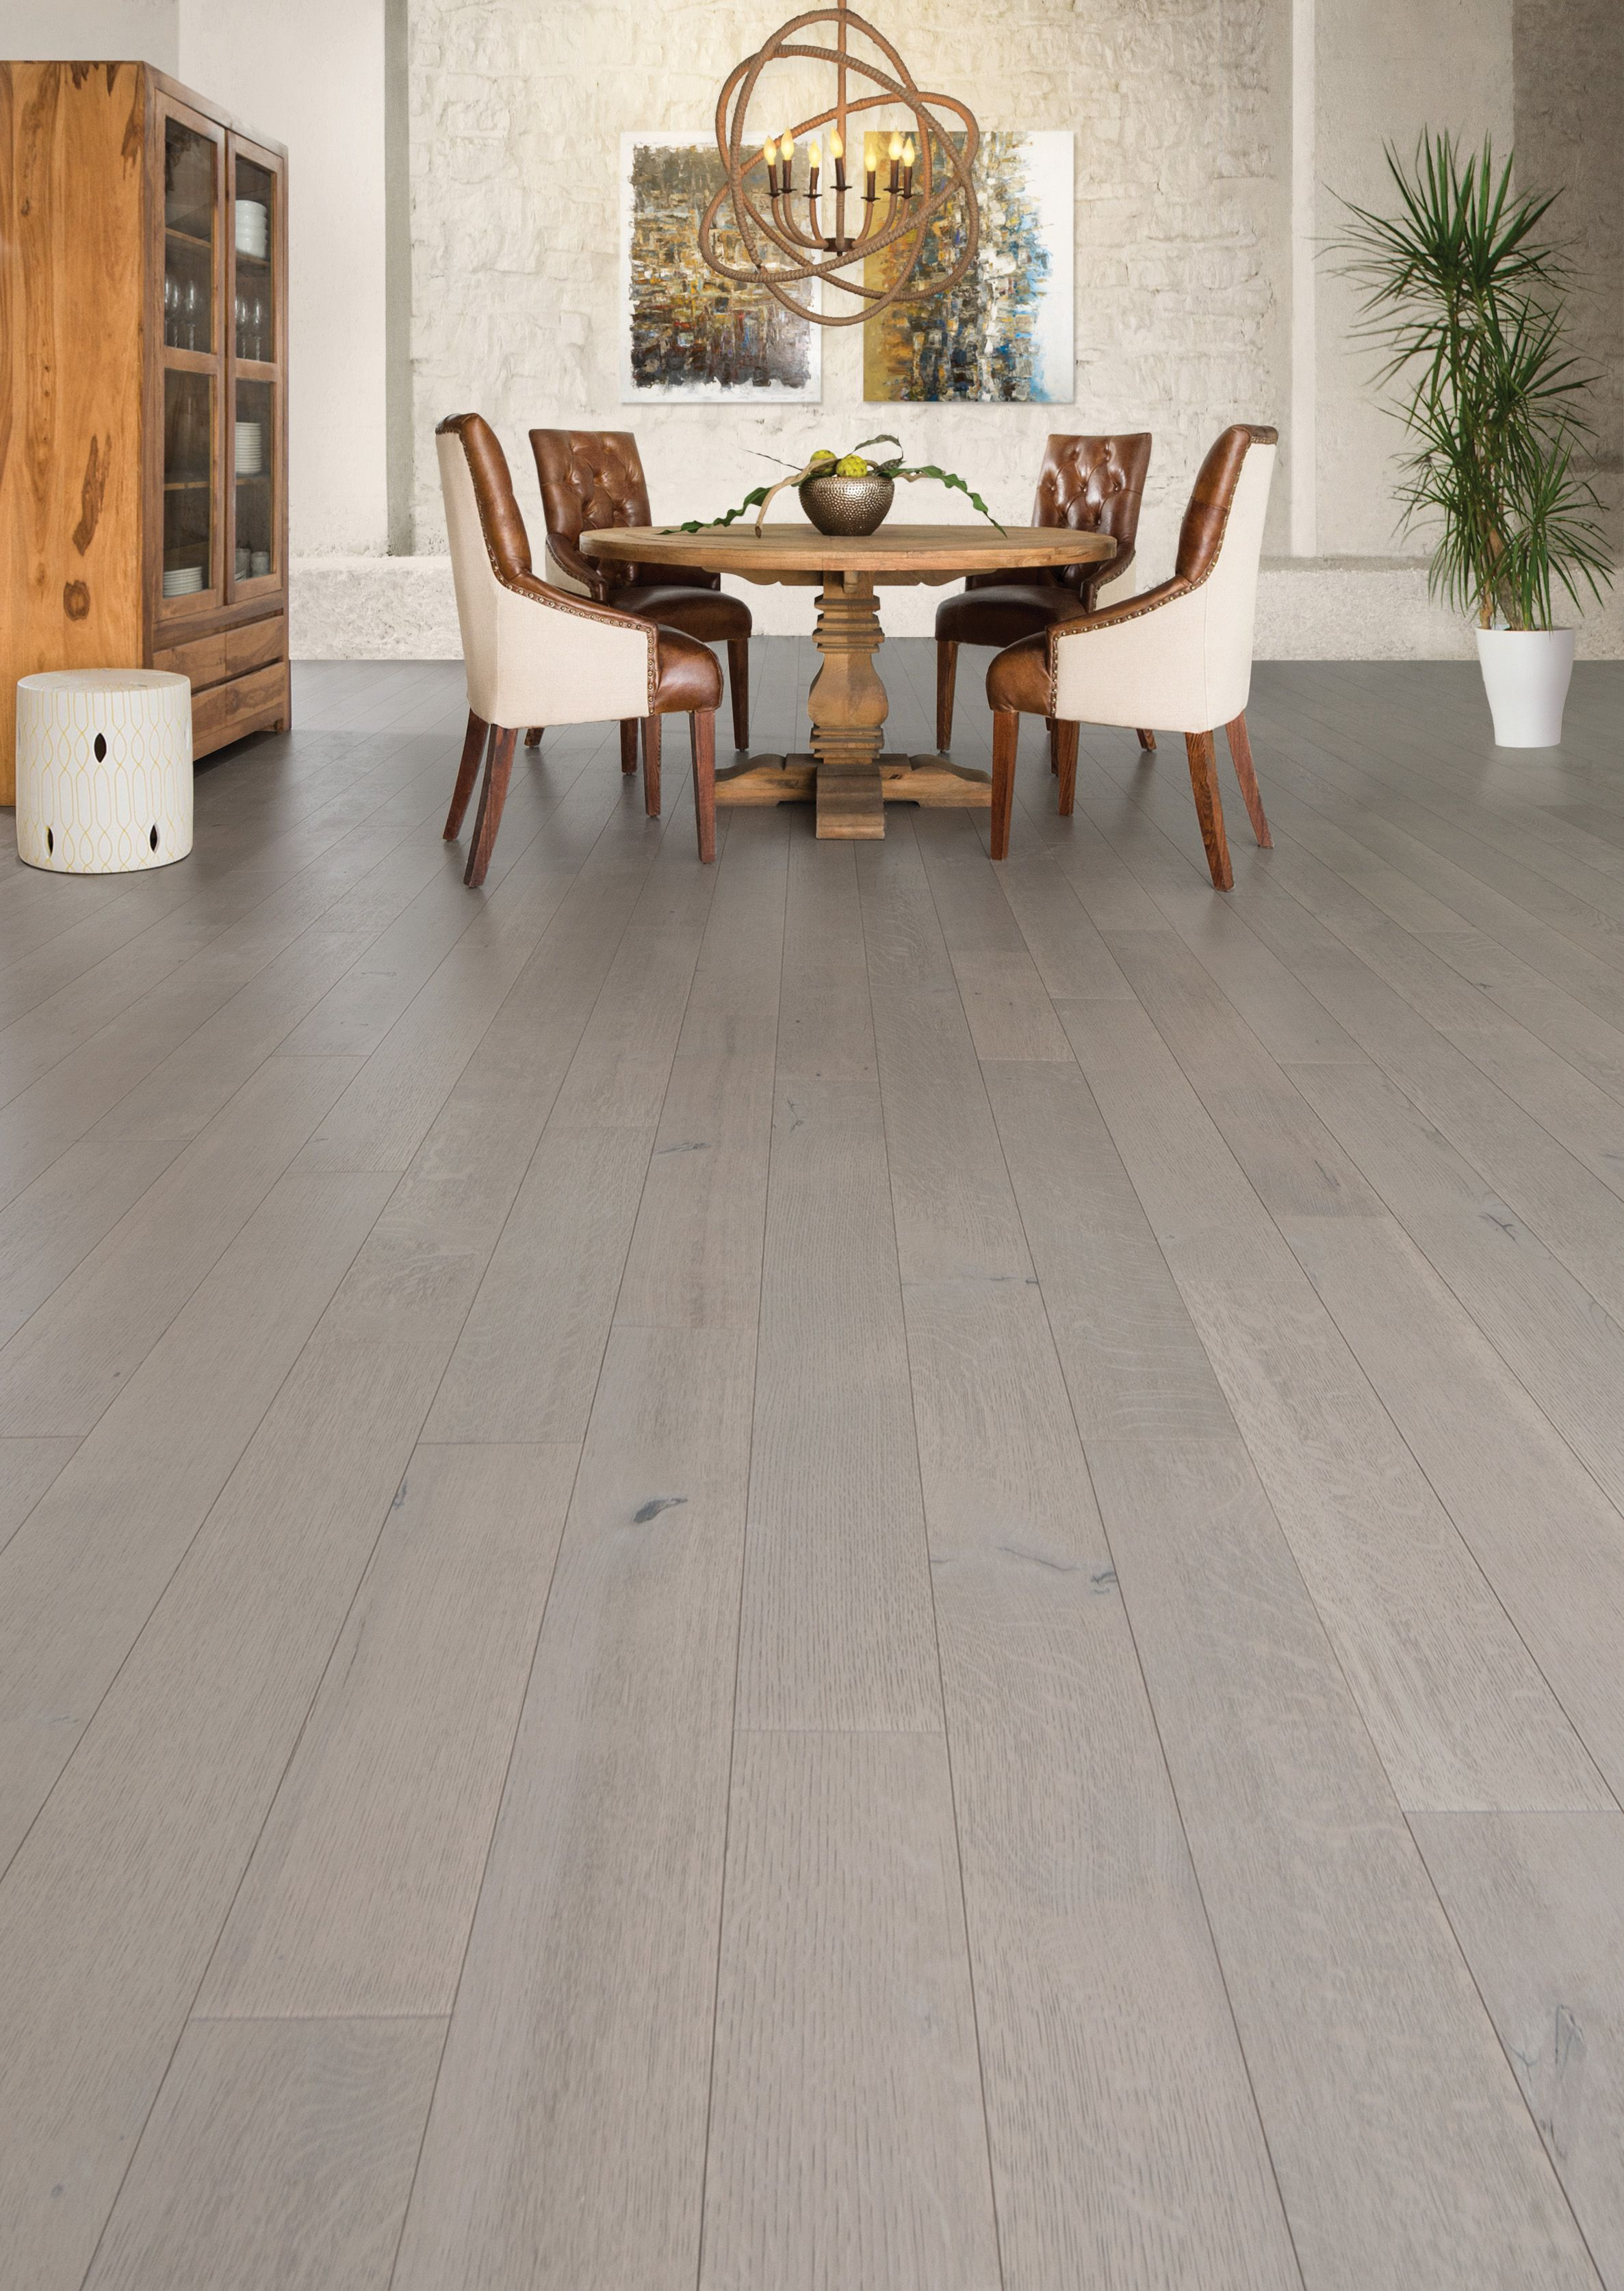 Mirage Hardwood Flooring Prices Of Hardwood Floors San Francisco Old Red Oak Linen Mirage Hardwood with Regard to Hardwood Floors San Francisco Handcrafted White Oak Rq Treasure Pinterest